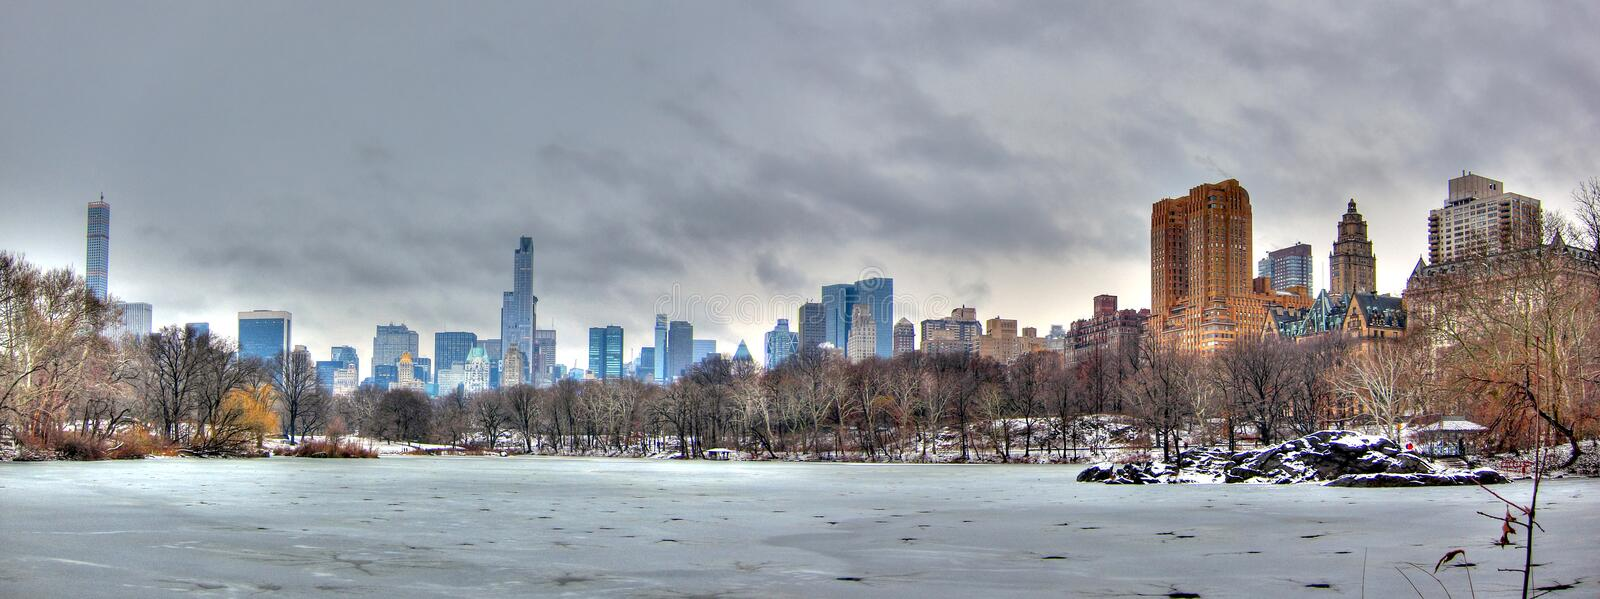 Central Park dans la neige, Manhattan, New York City photo libre de droits